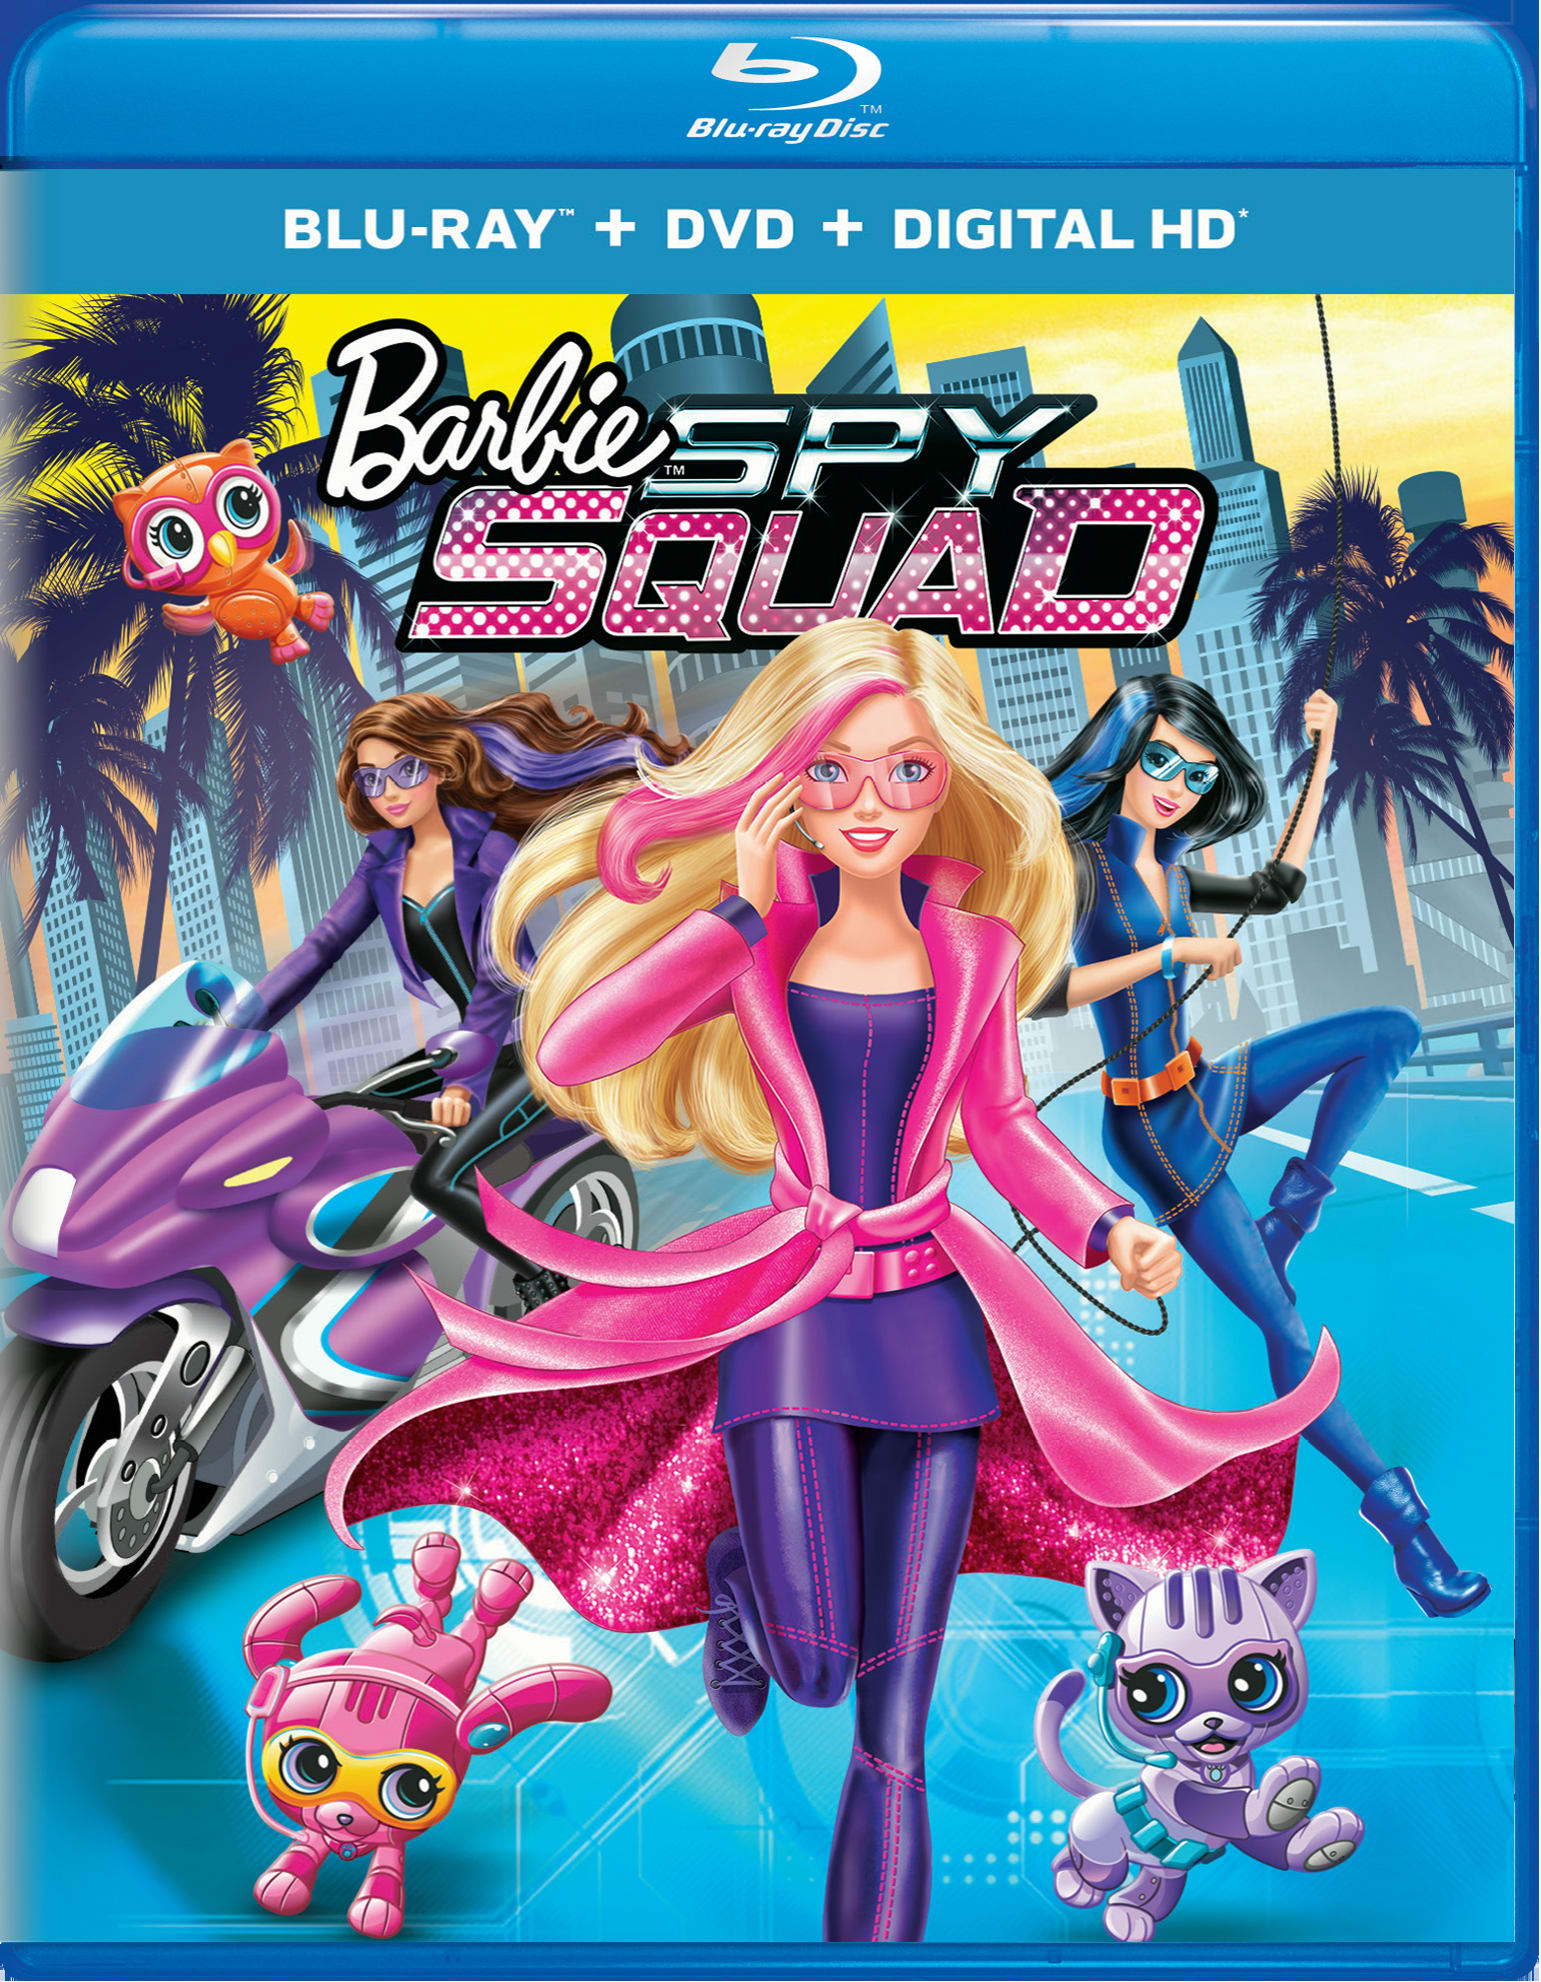 Barbie: Spy Squad (DVD + Digital) [Blu-ray]